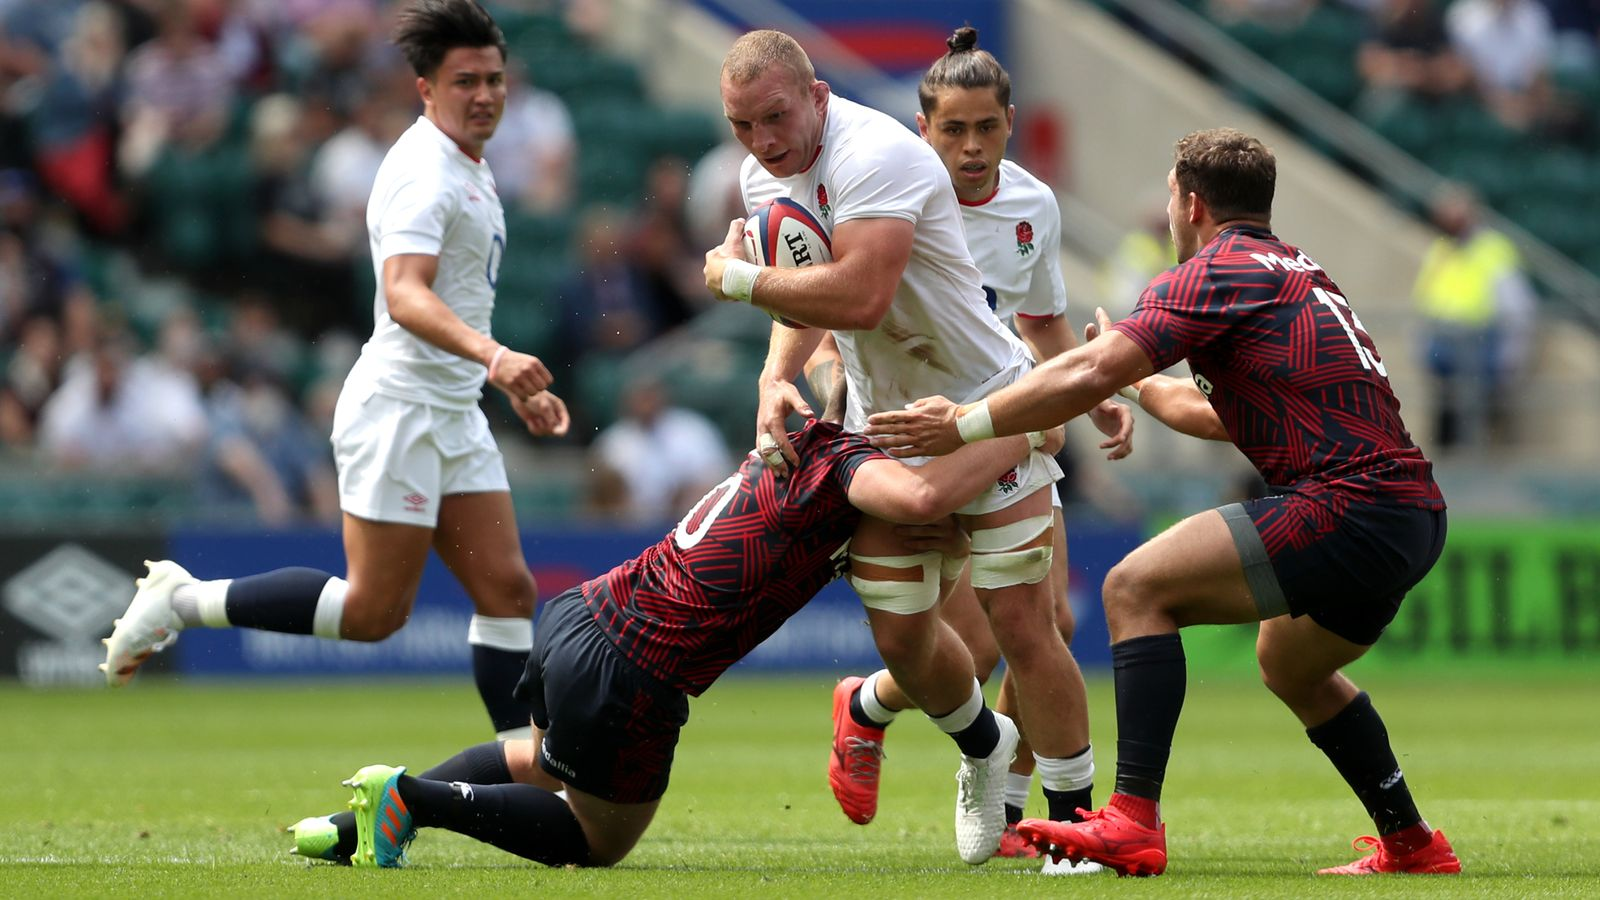 World 12s: World Rugby refuses to sanction tournament amid opposition from unions and leagues